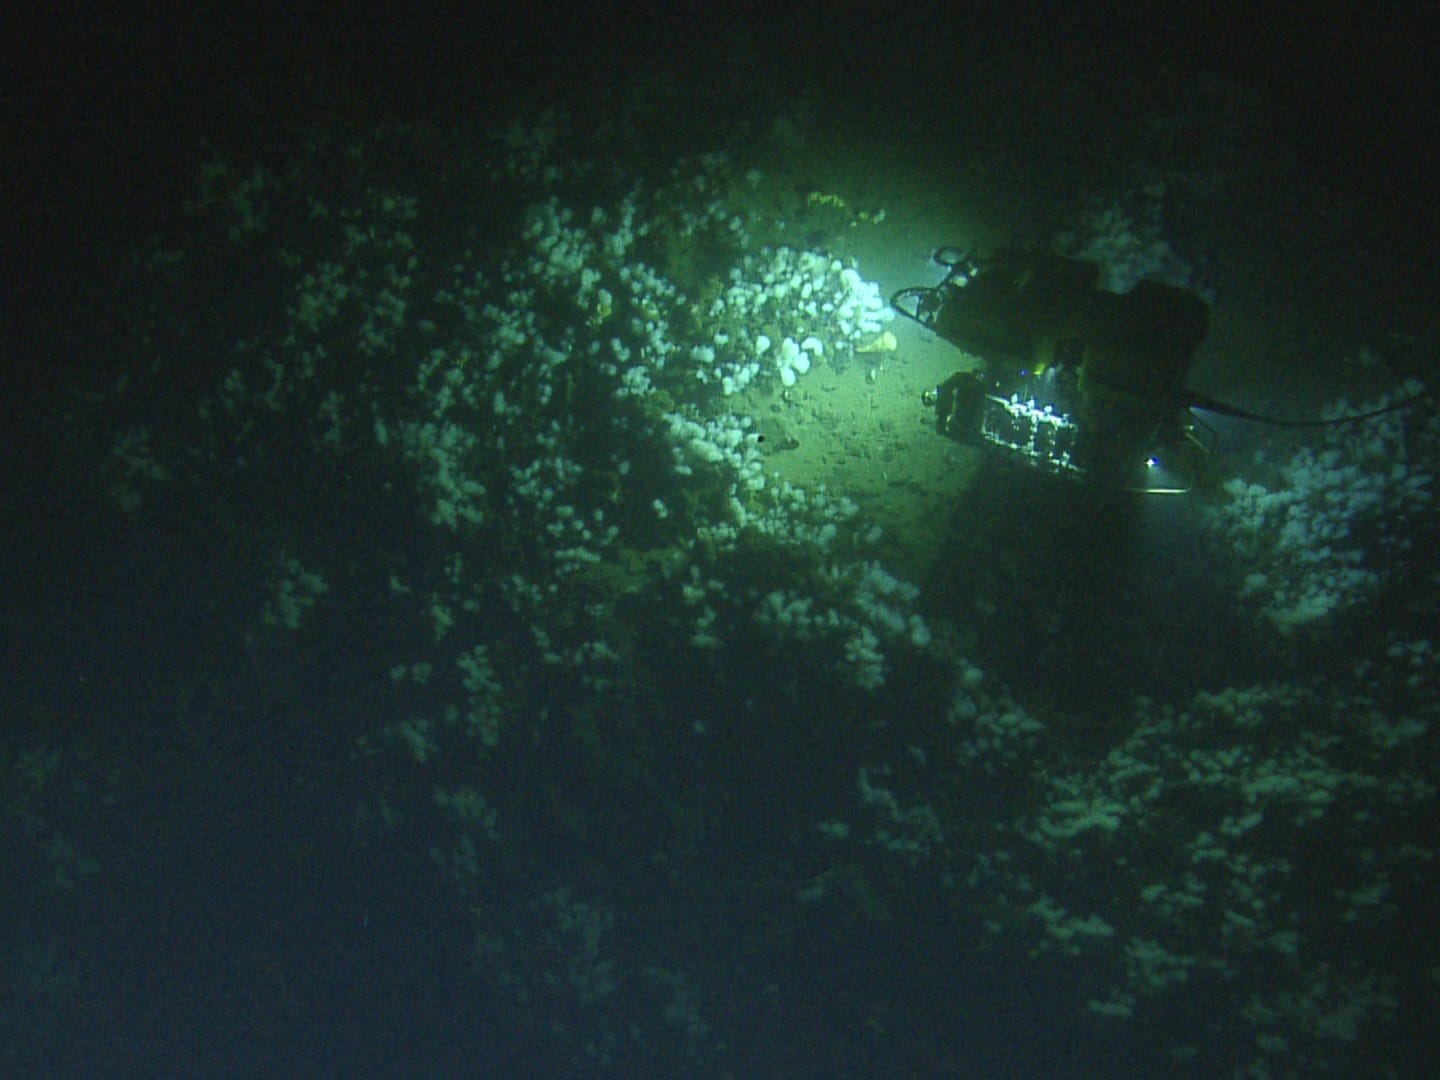 The remotely-operated vehicle Hercules, about the size of a large SUV, is dwarfed by one small section of the massive sponge garden discovered during the final dive.